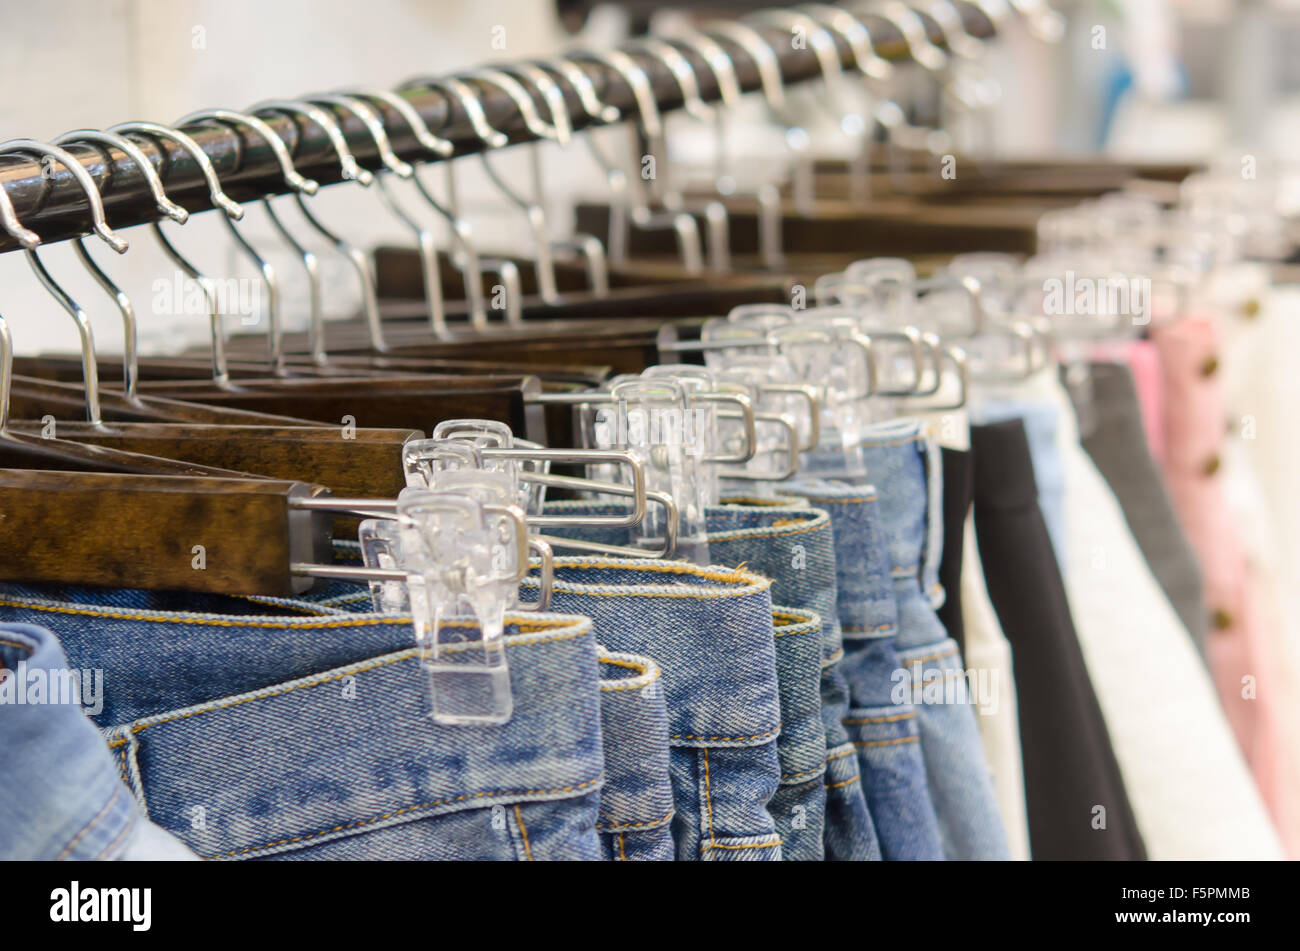 Hanger pants and skirts for women - Stock Image